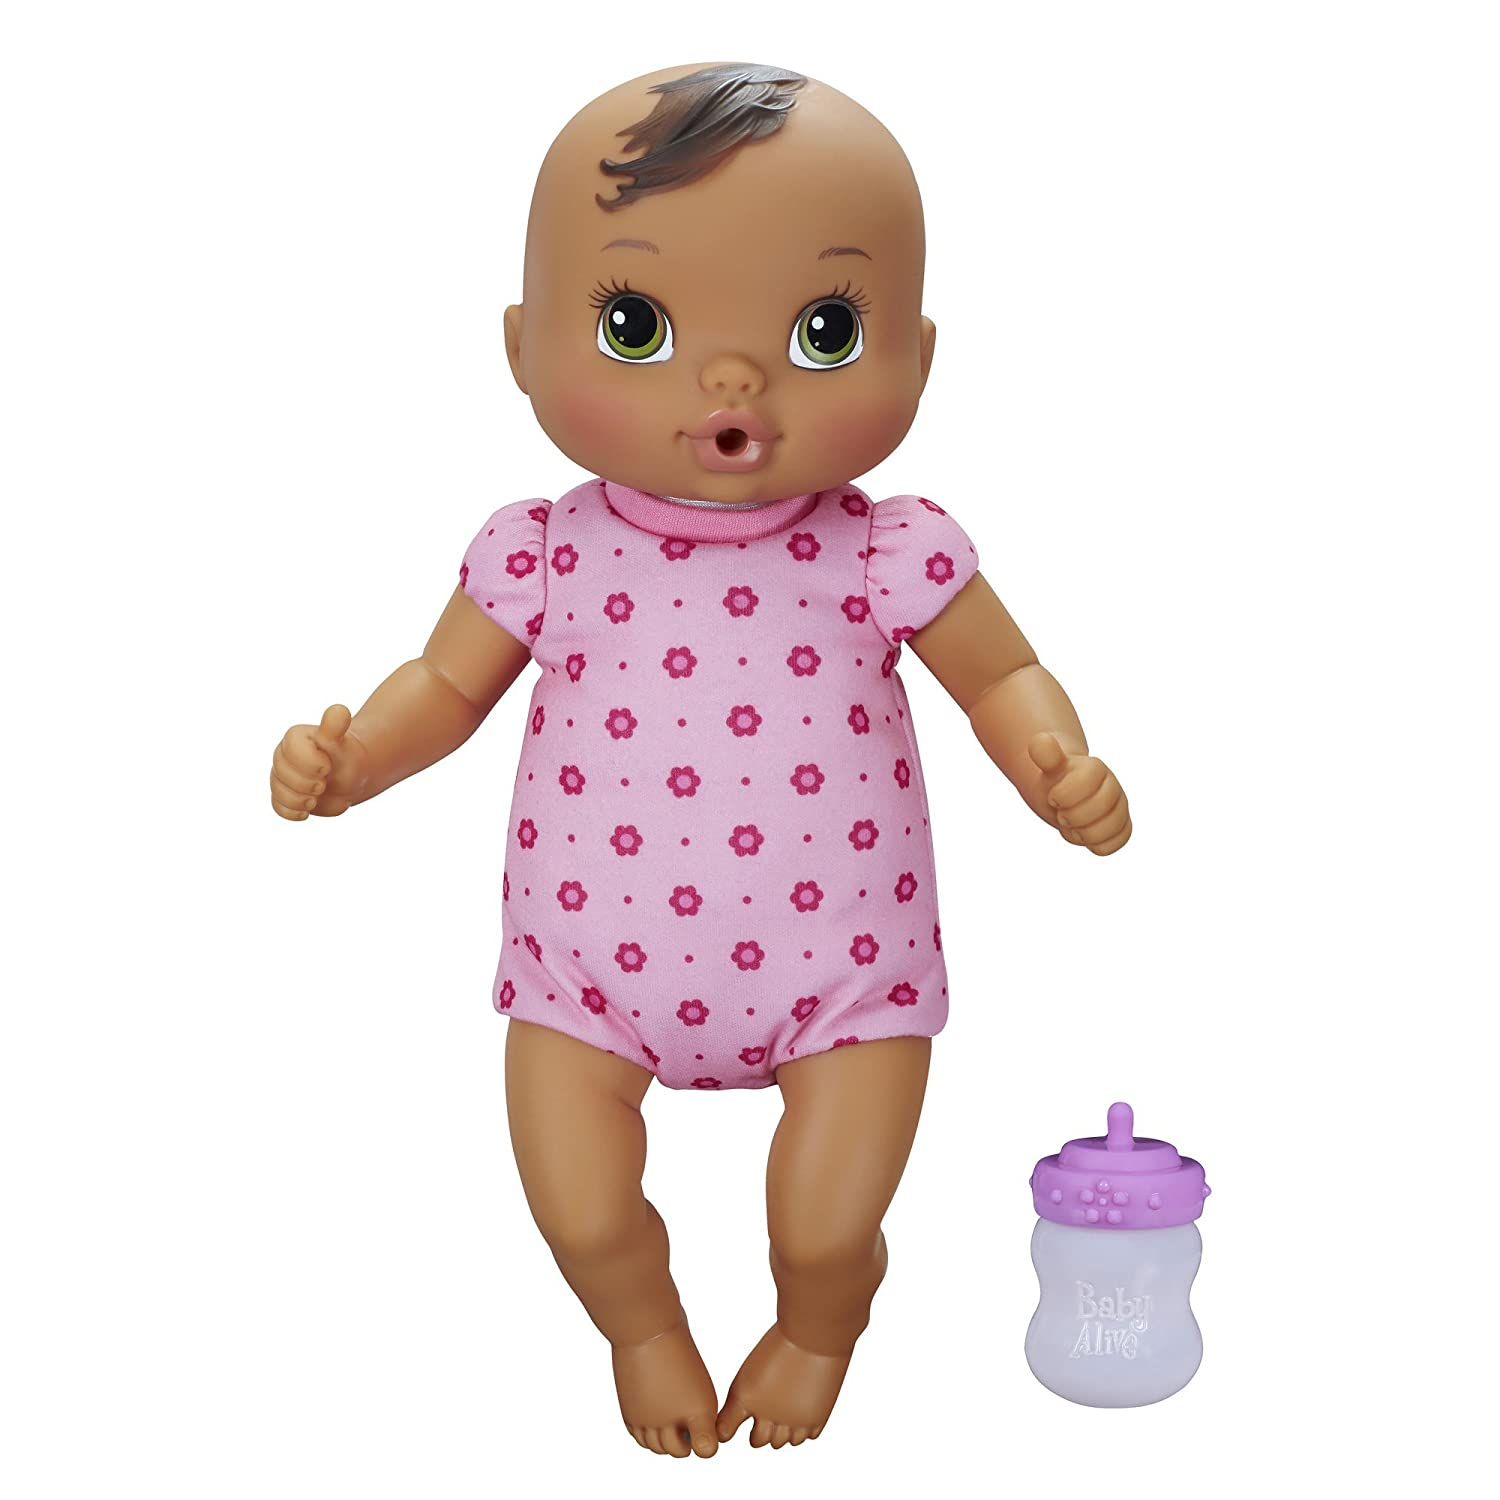 Baby Alive Doll Kids Toys Toddler Girls Soft Cuddly Gift Pretend